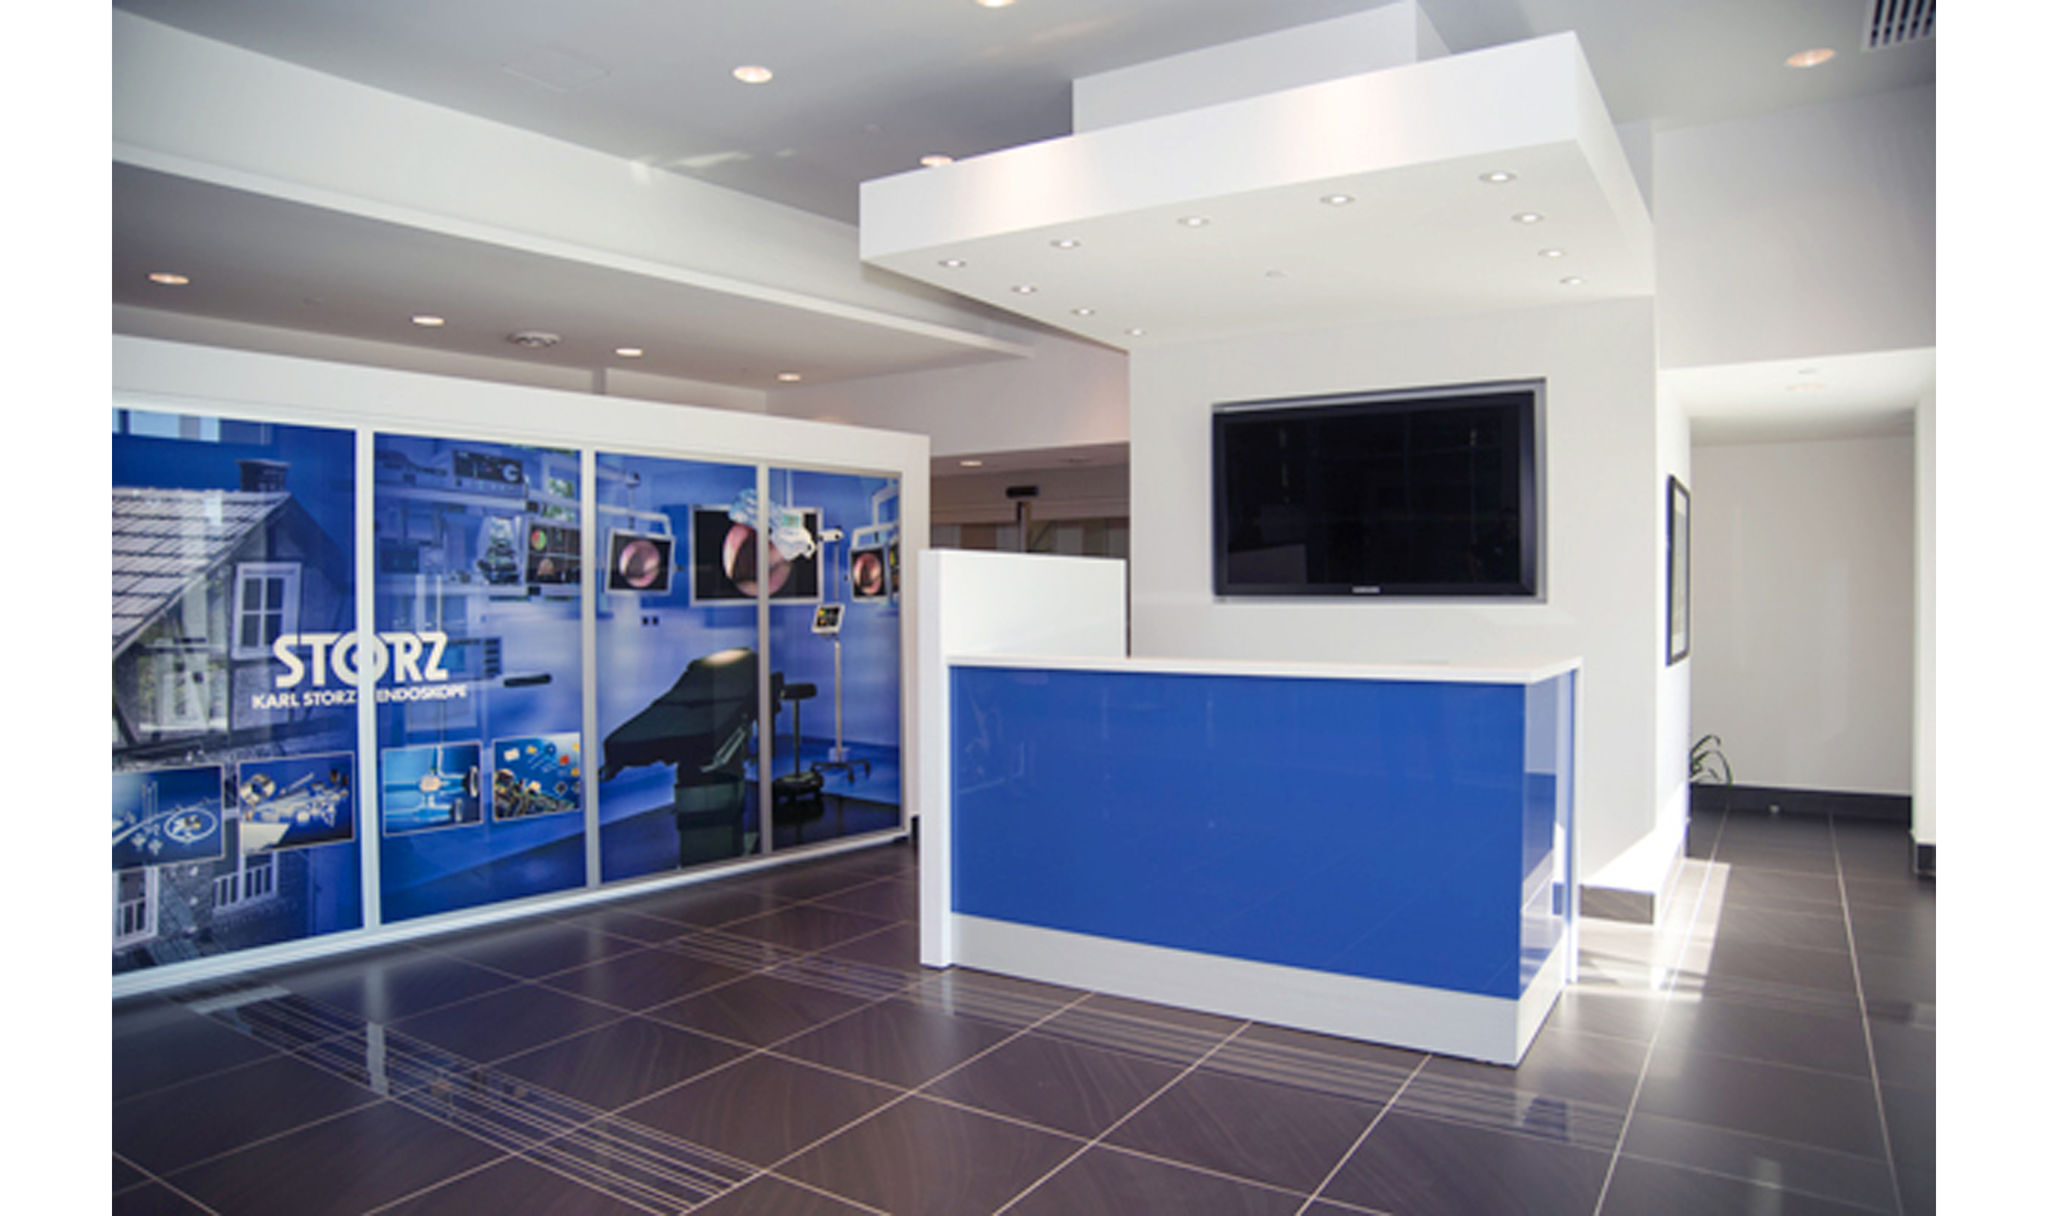 http://studio185.ca/interior-karl-storz-mississauga-offices